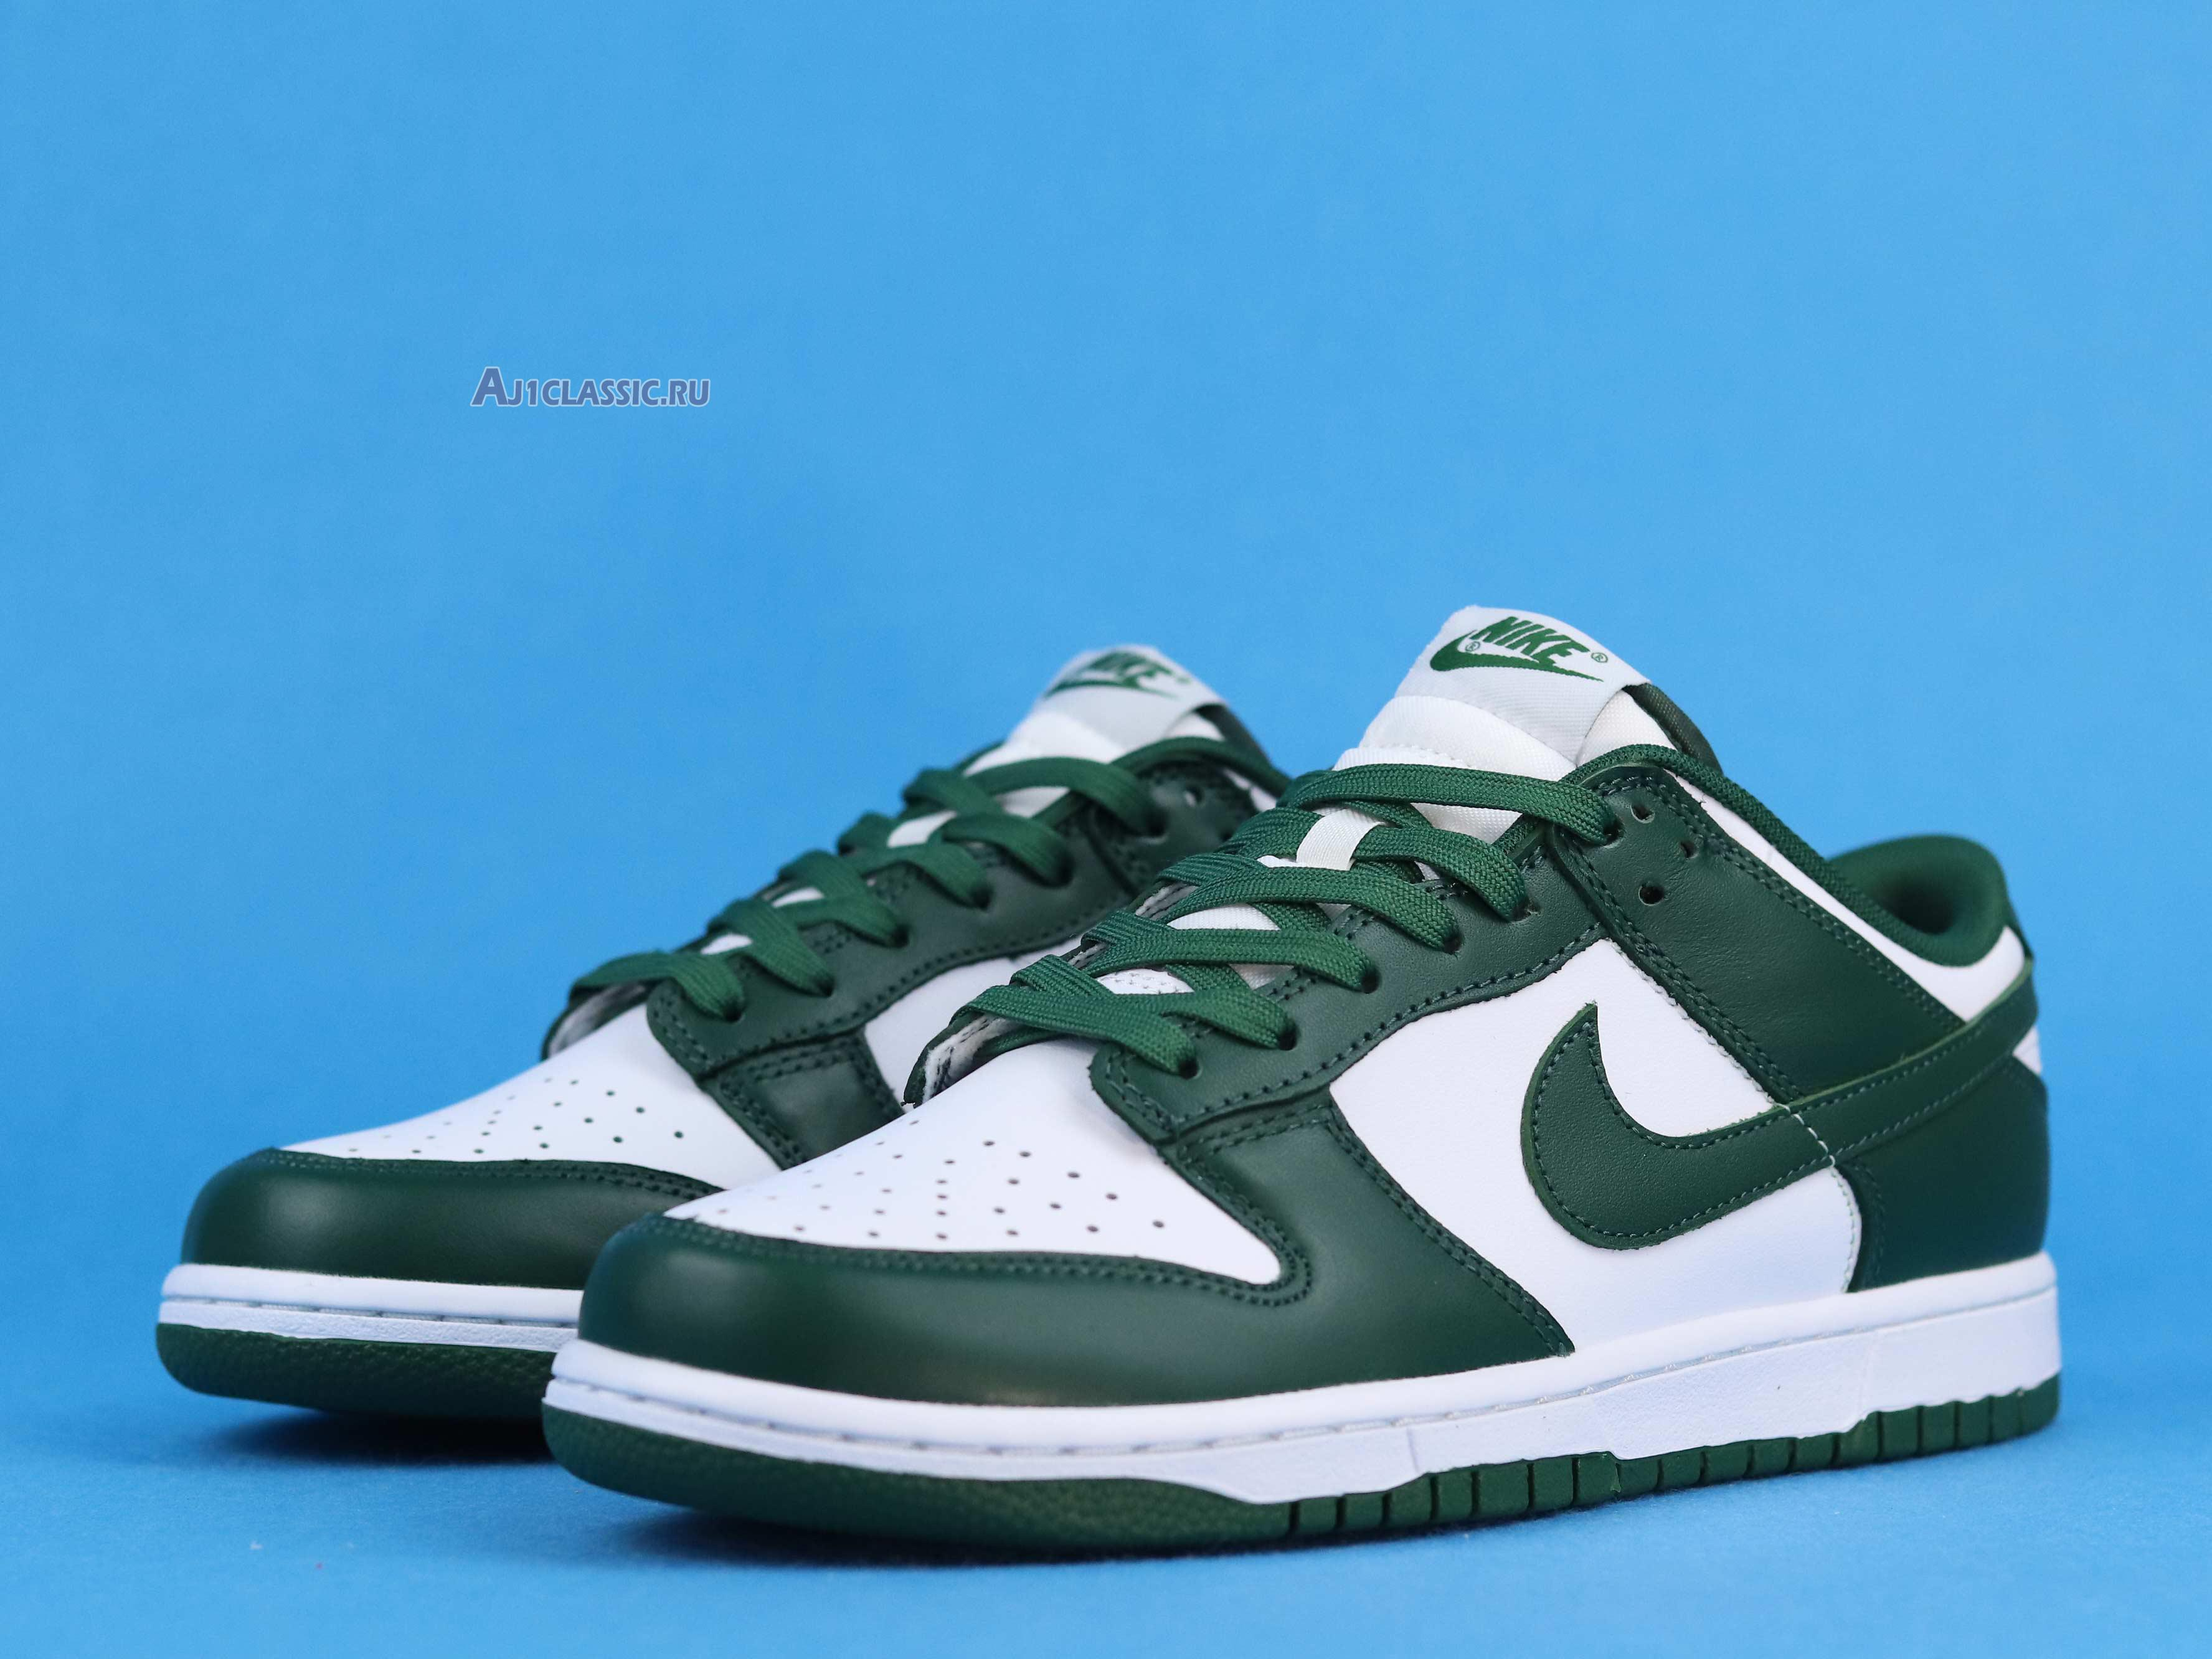 DUNK LOW GS 'MICHIGAN STATE'